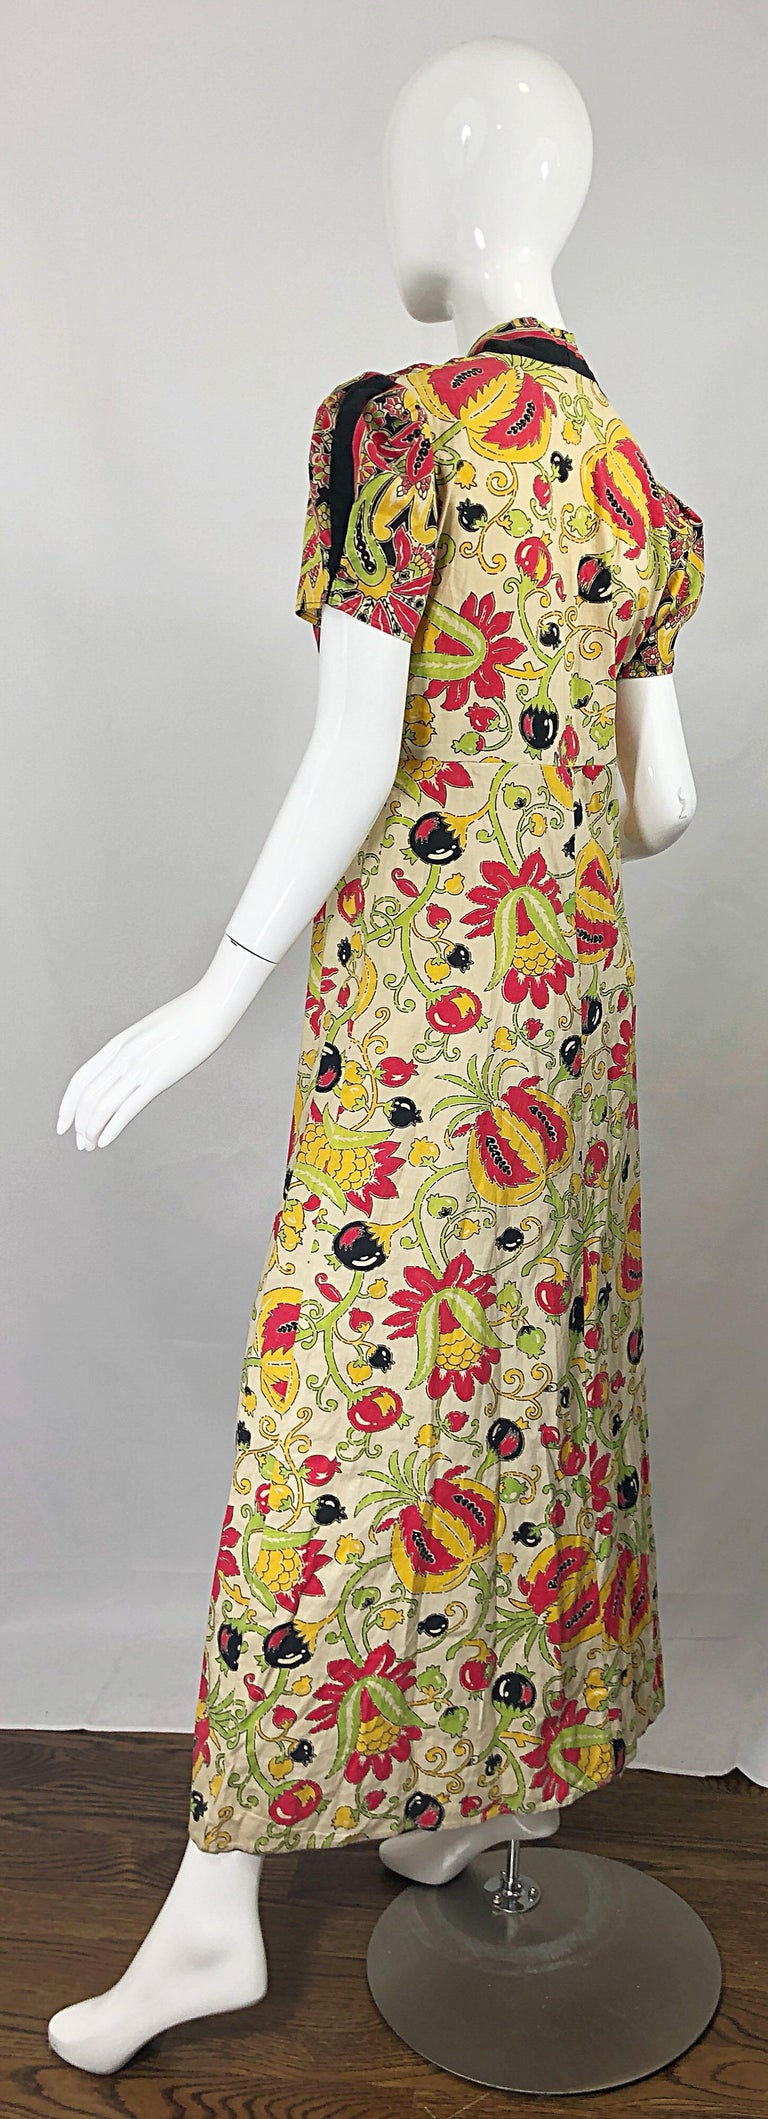 Amazing 1940s Botanical Asian Inspired Paisley Cotton + Linen 40s Maxi Dress For Sale 8